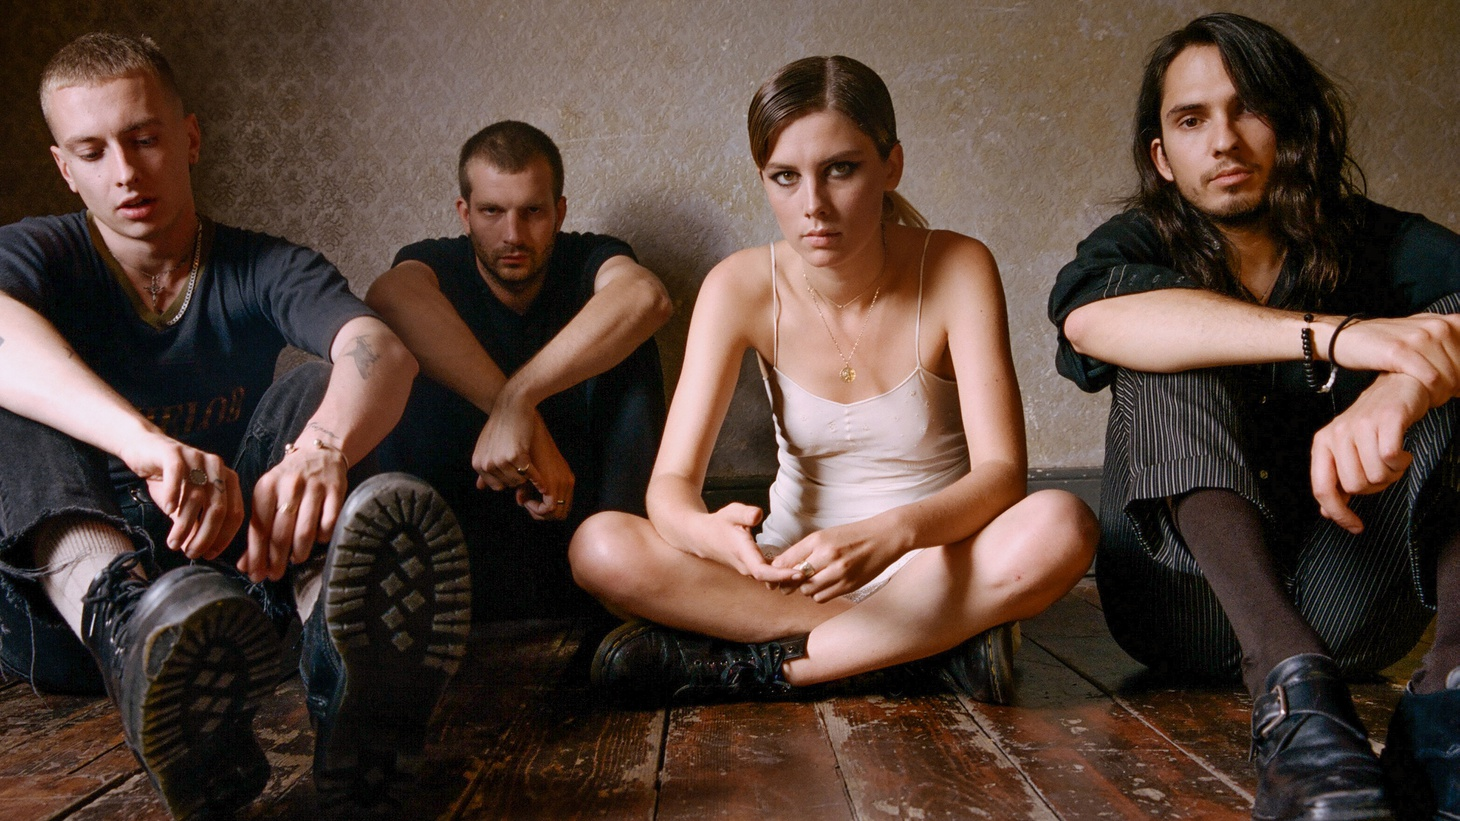 The sophomore album from London rockers Wolf Alice is a bold move forward for a band that came out of the gate with confidence and determination on their 2015 debut.